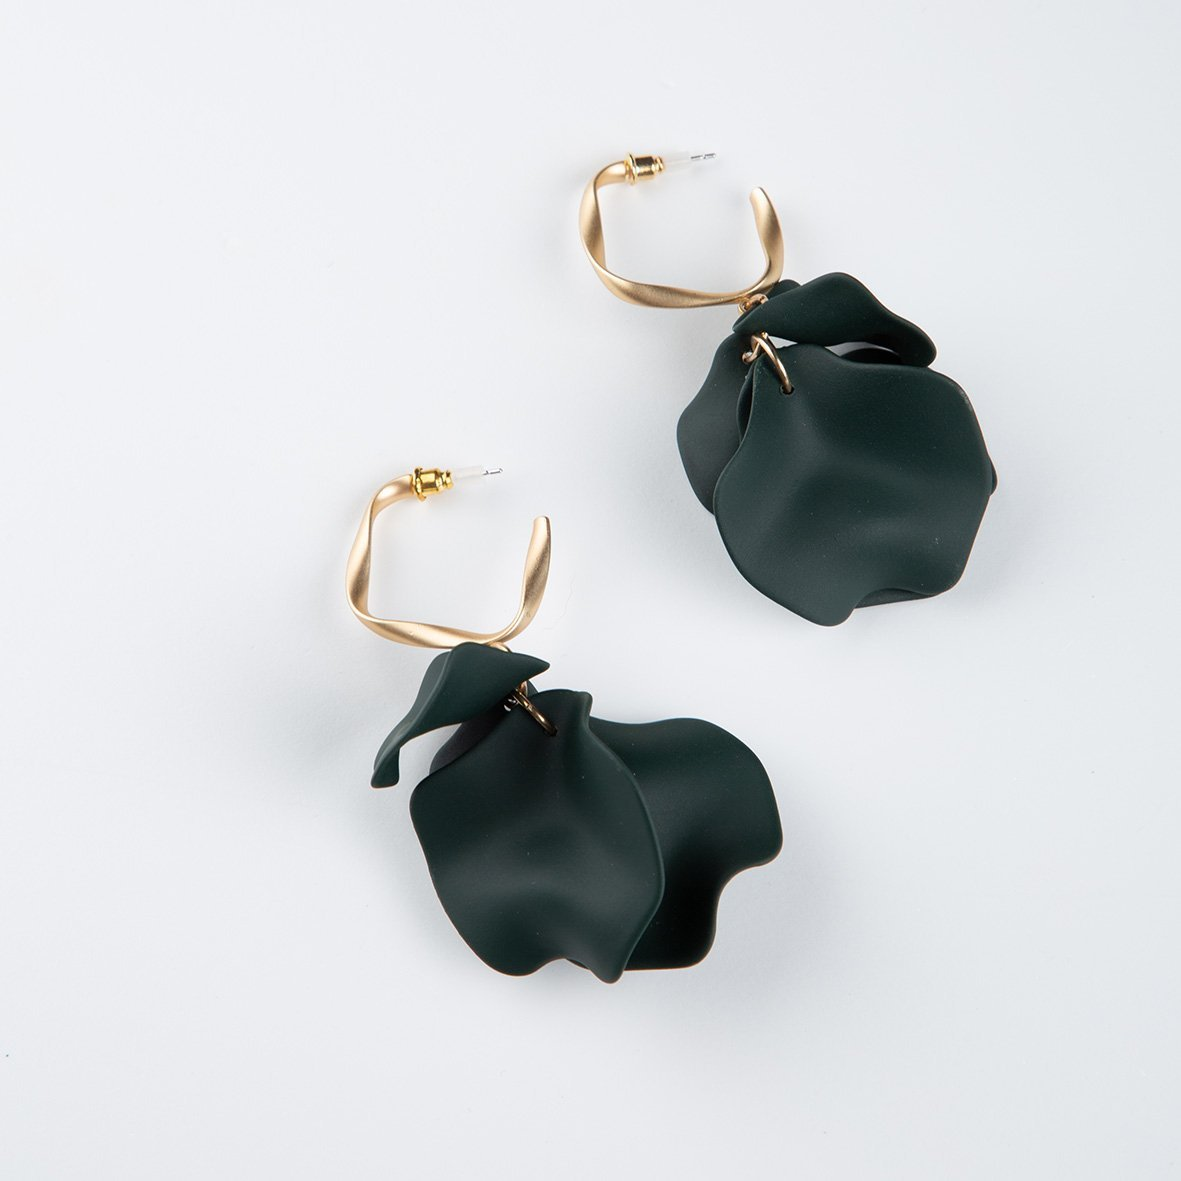 curAtiv proudly gives you Prague Organic Petal with Matt Gold Hoops Earrings.